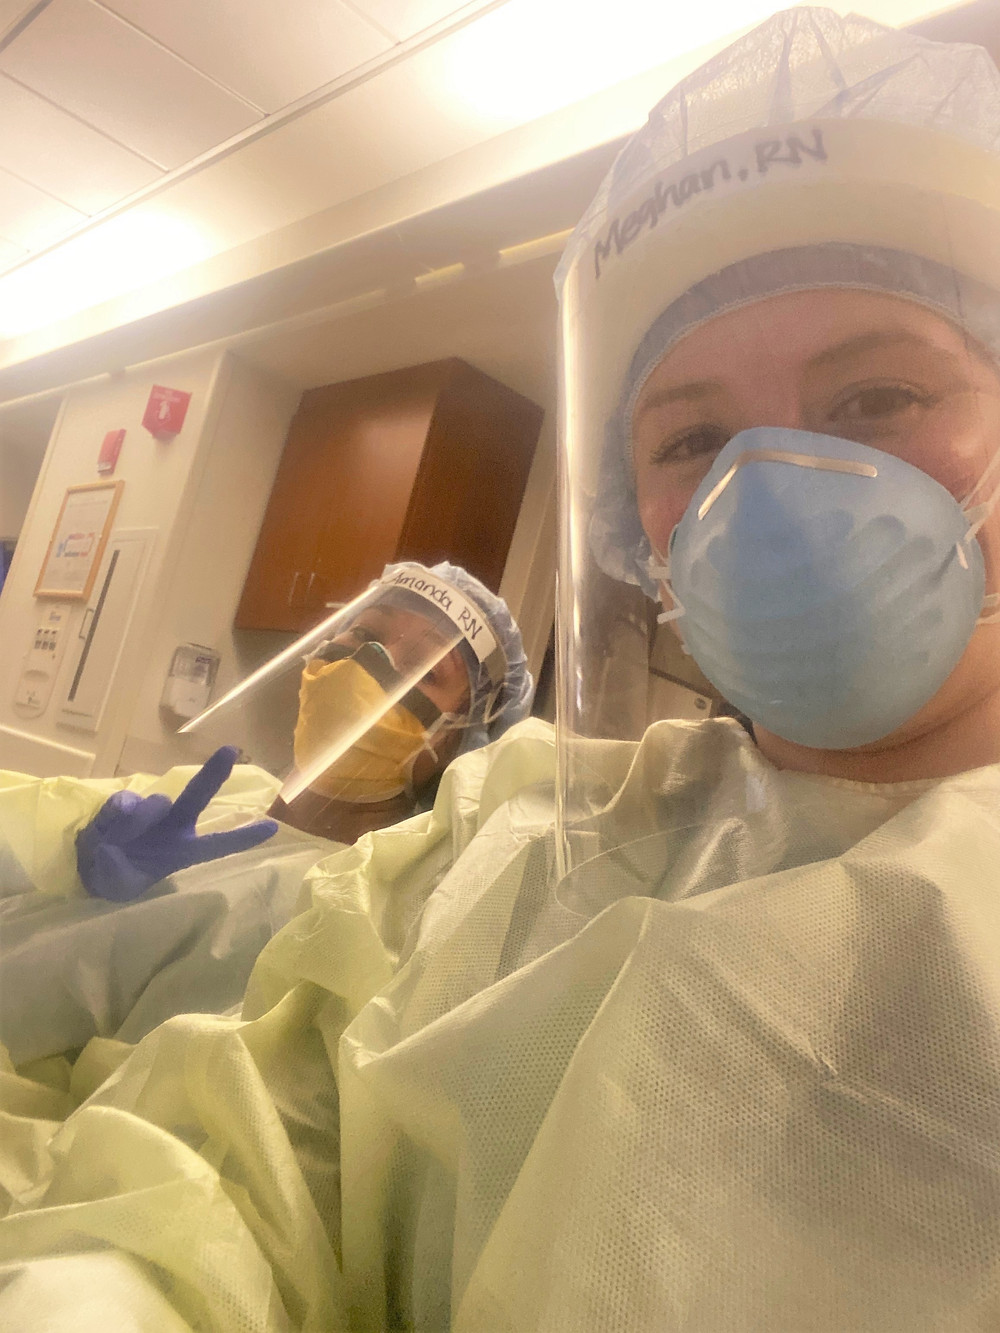 Nurses wearing PPE in hospital during COVID pandemic